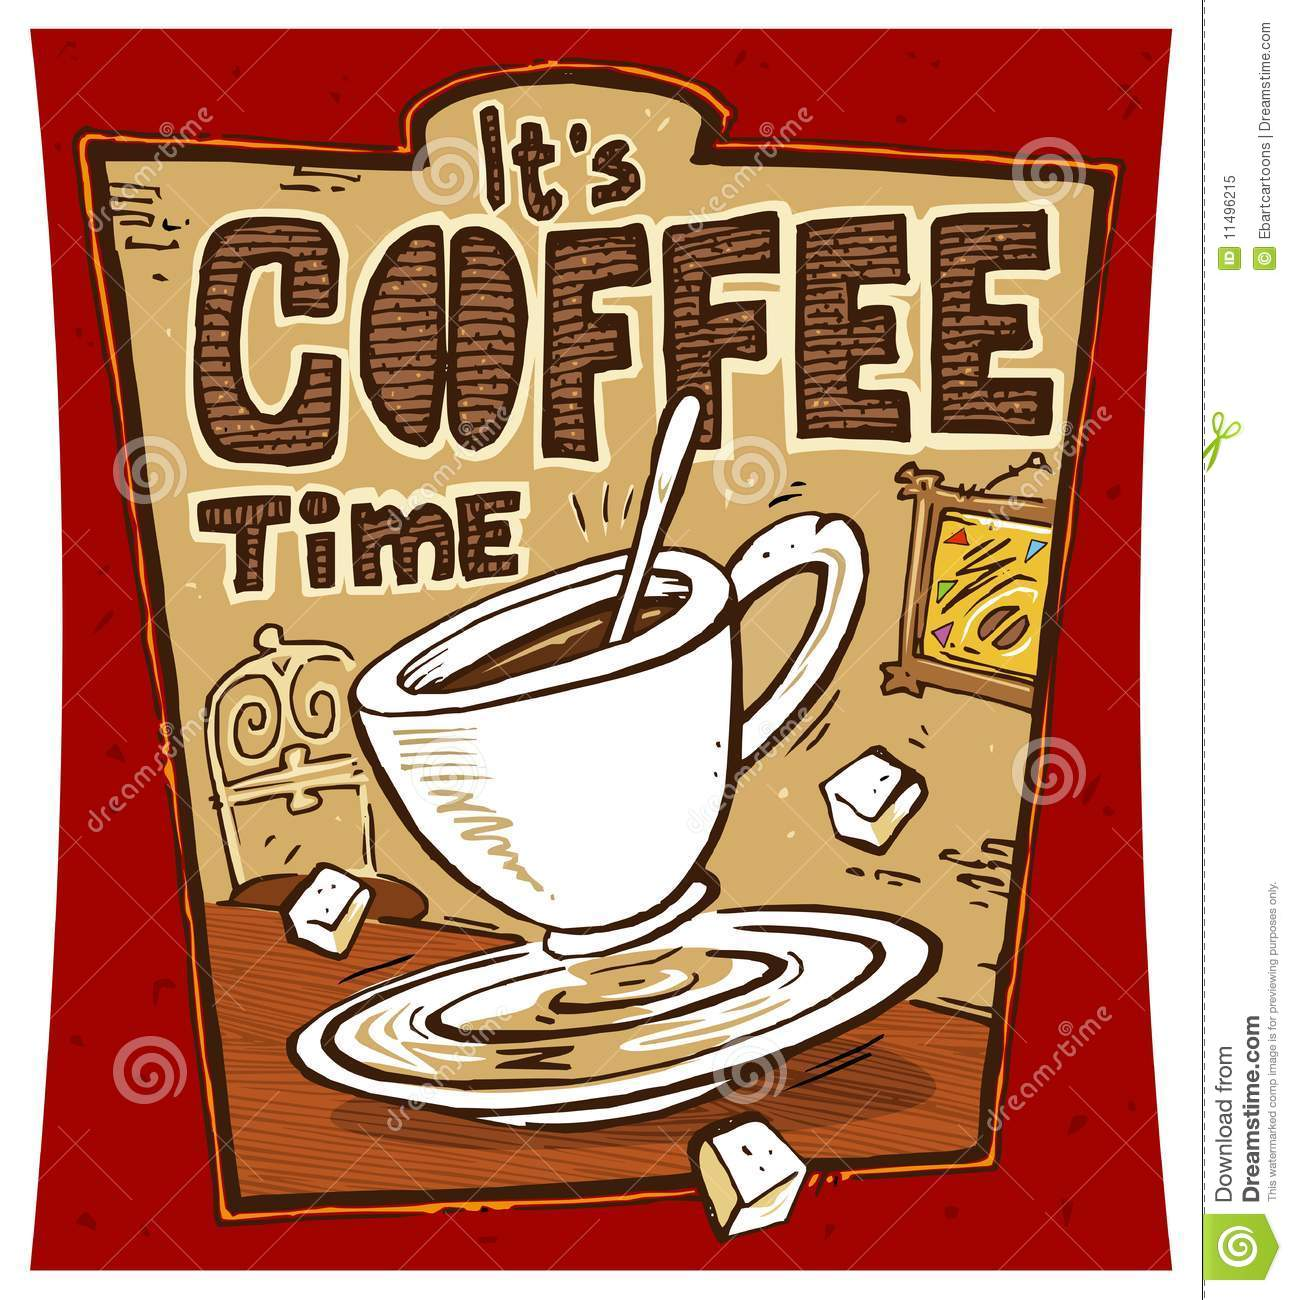 coffee time poster stock illustration image of restaurant coffee cup clipart love coffee cup clipart etsy